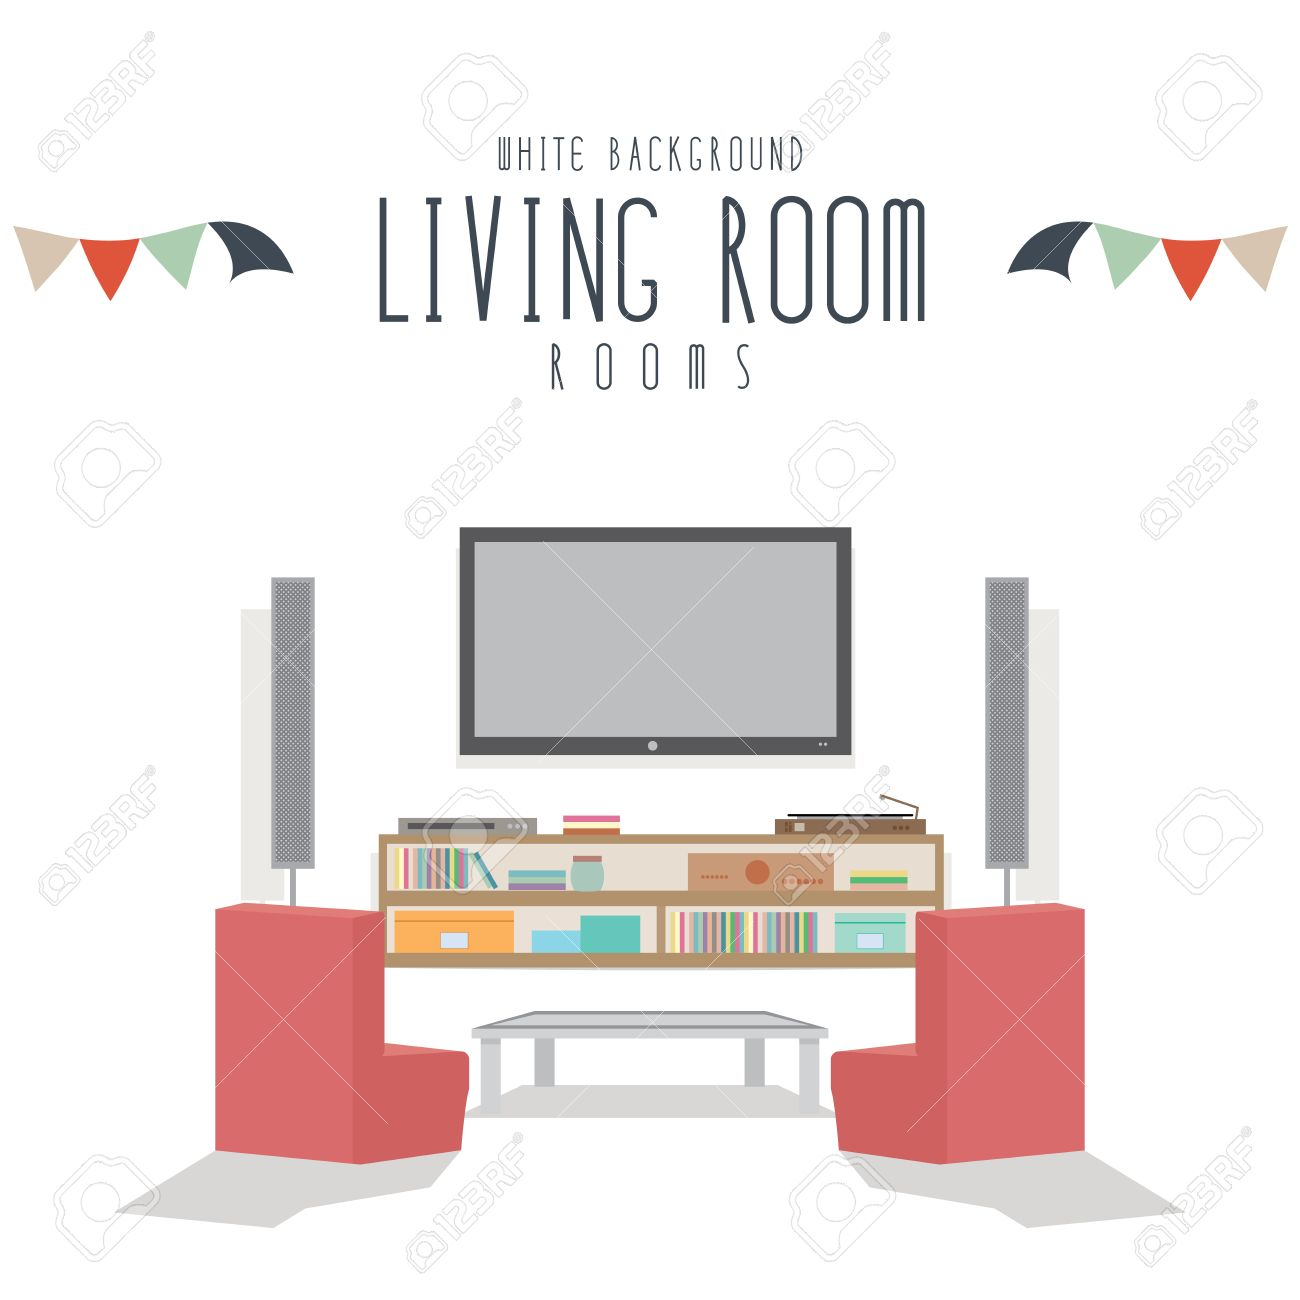 Living Room, Vector Illustration Of Living Room (White Background ...